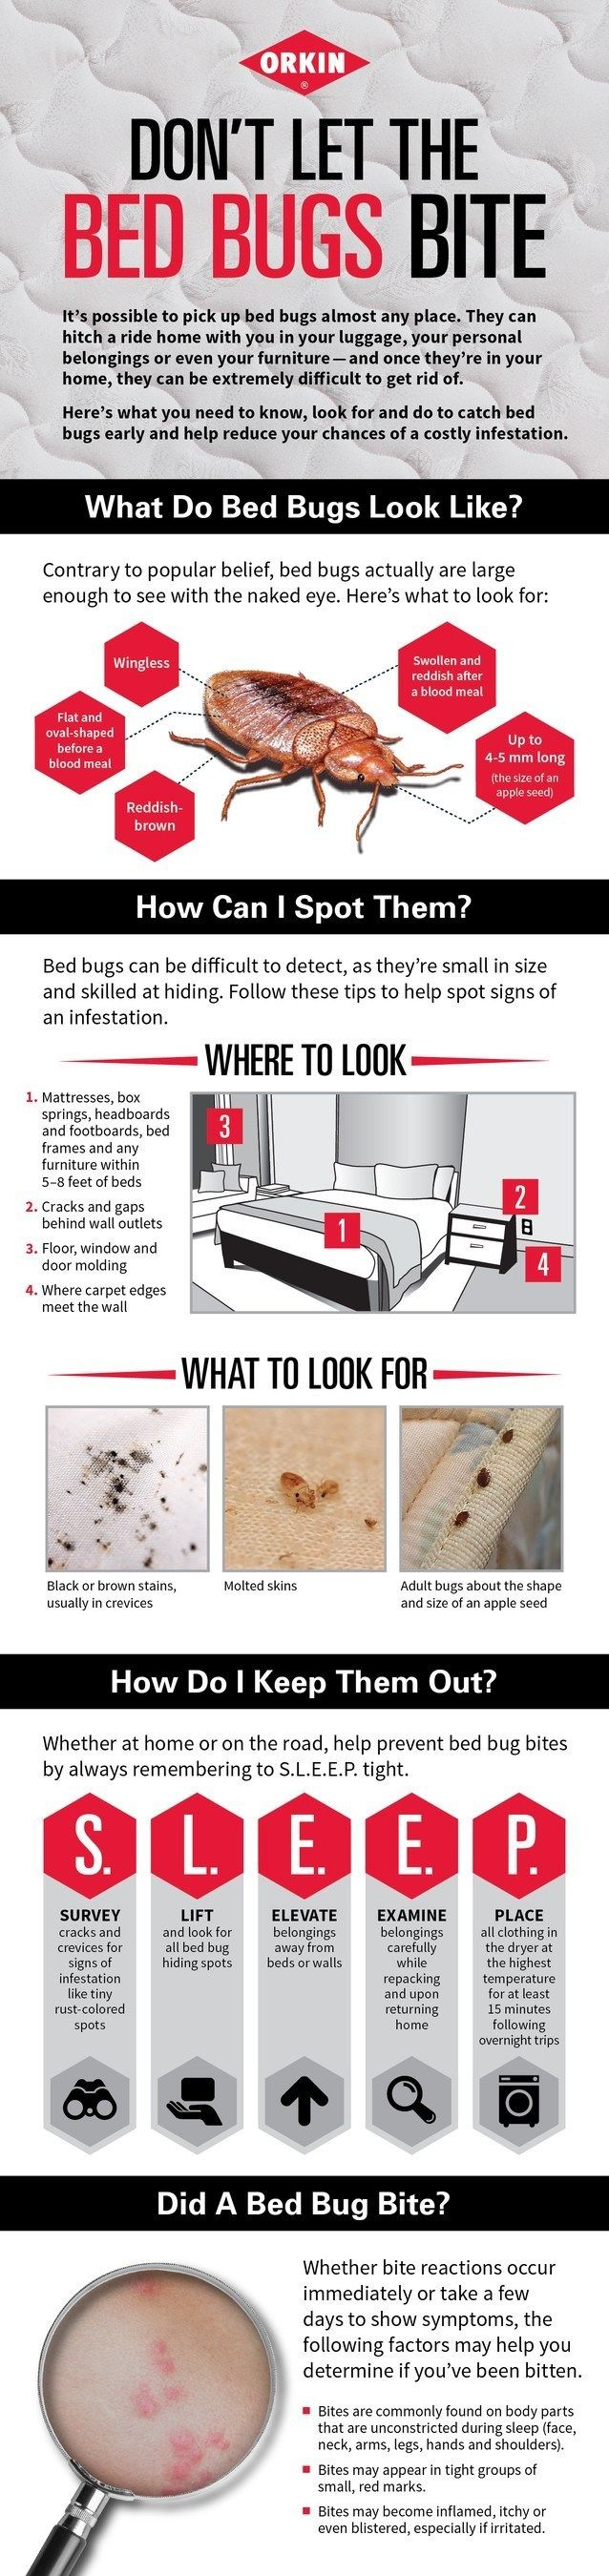 don't let the bed bugs bite! bed bugs are great hitchhikers and